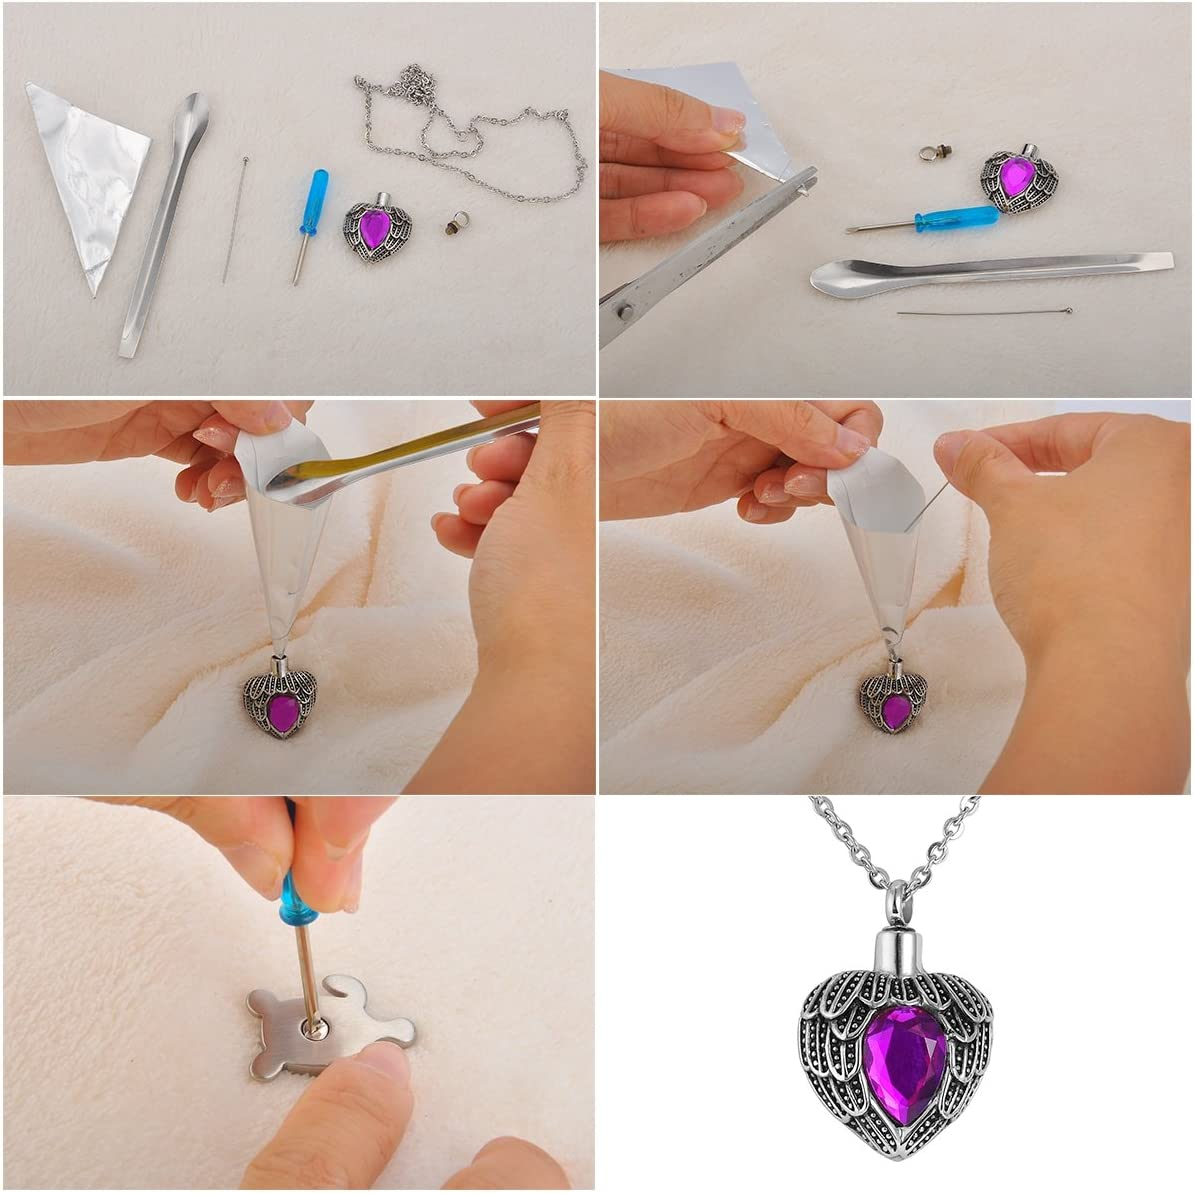 VALYRIA Stainless Steel Keychain My Sister My Friend Heart Urn Charm Cremation Keepsake Ashes